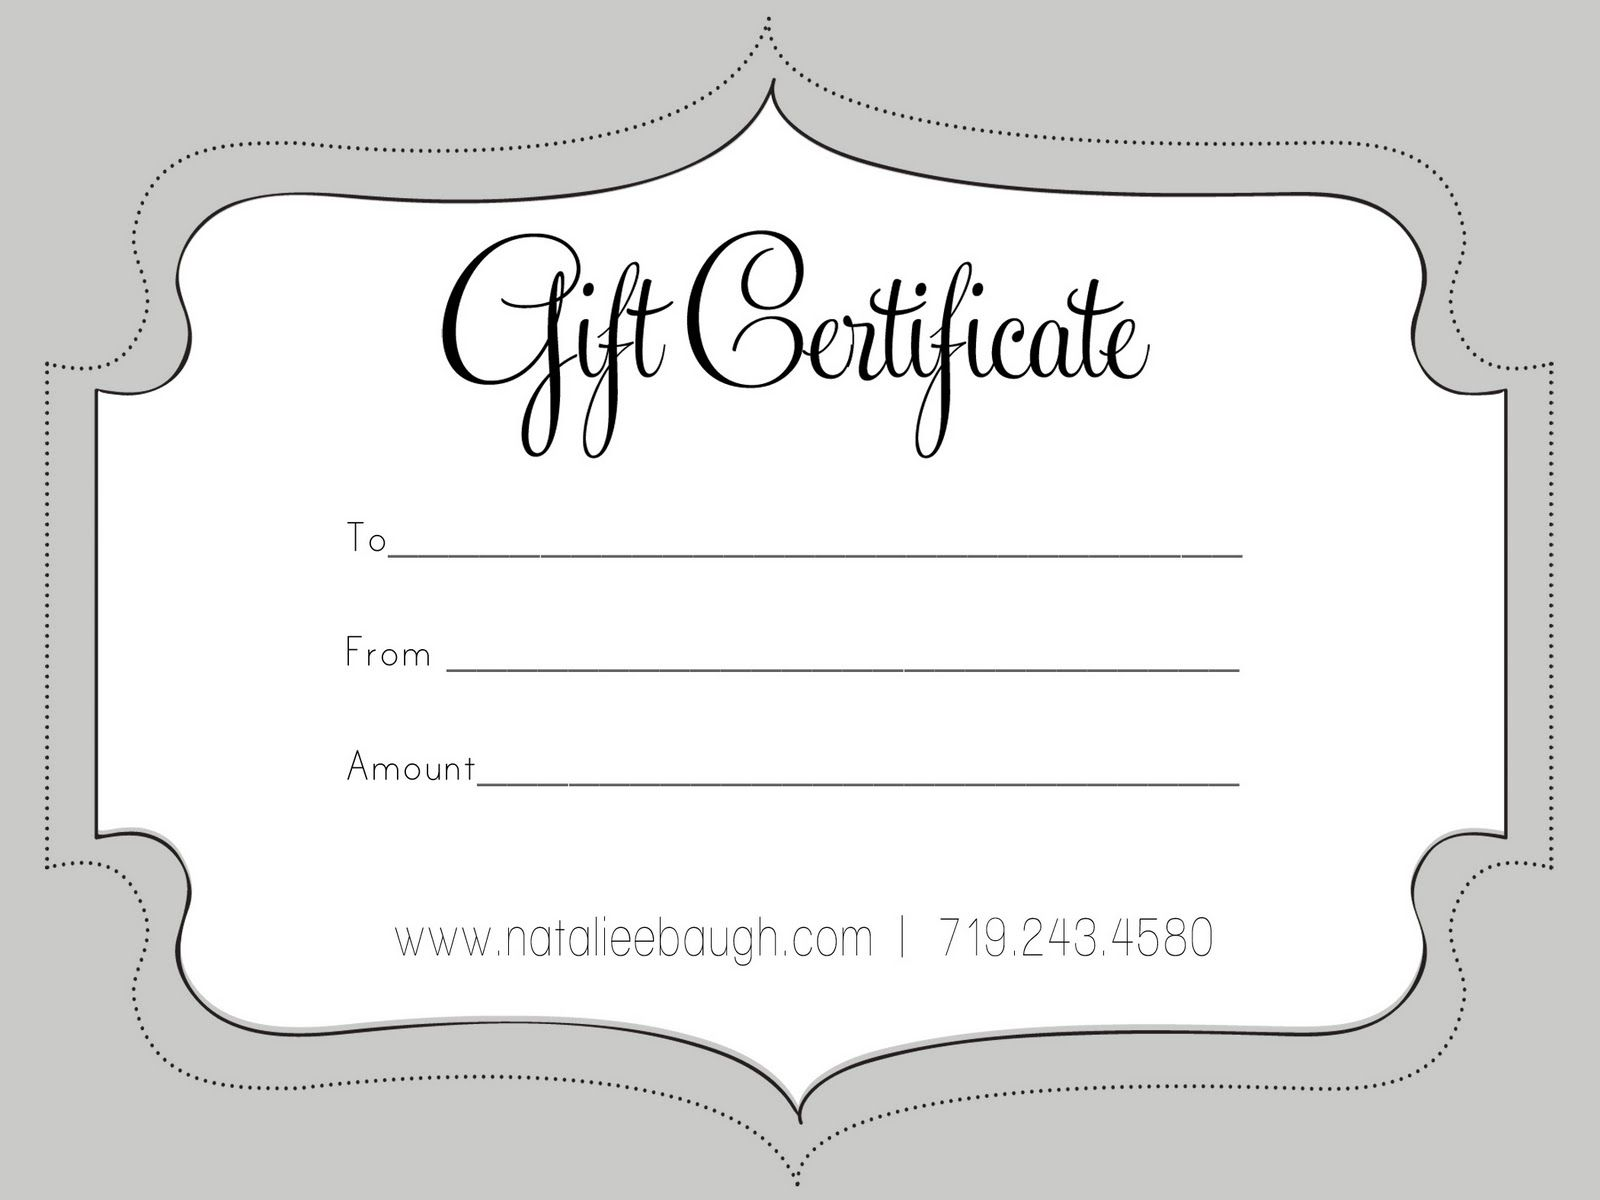 a cute looking gift certificate jams gift a cute looking gift certificate